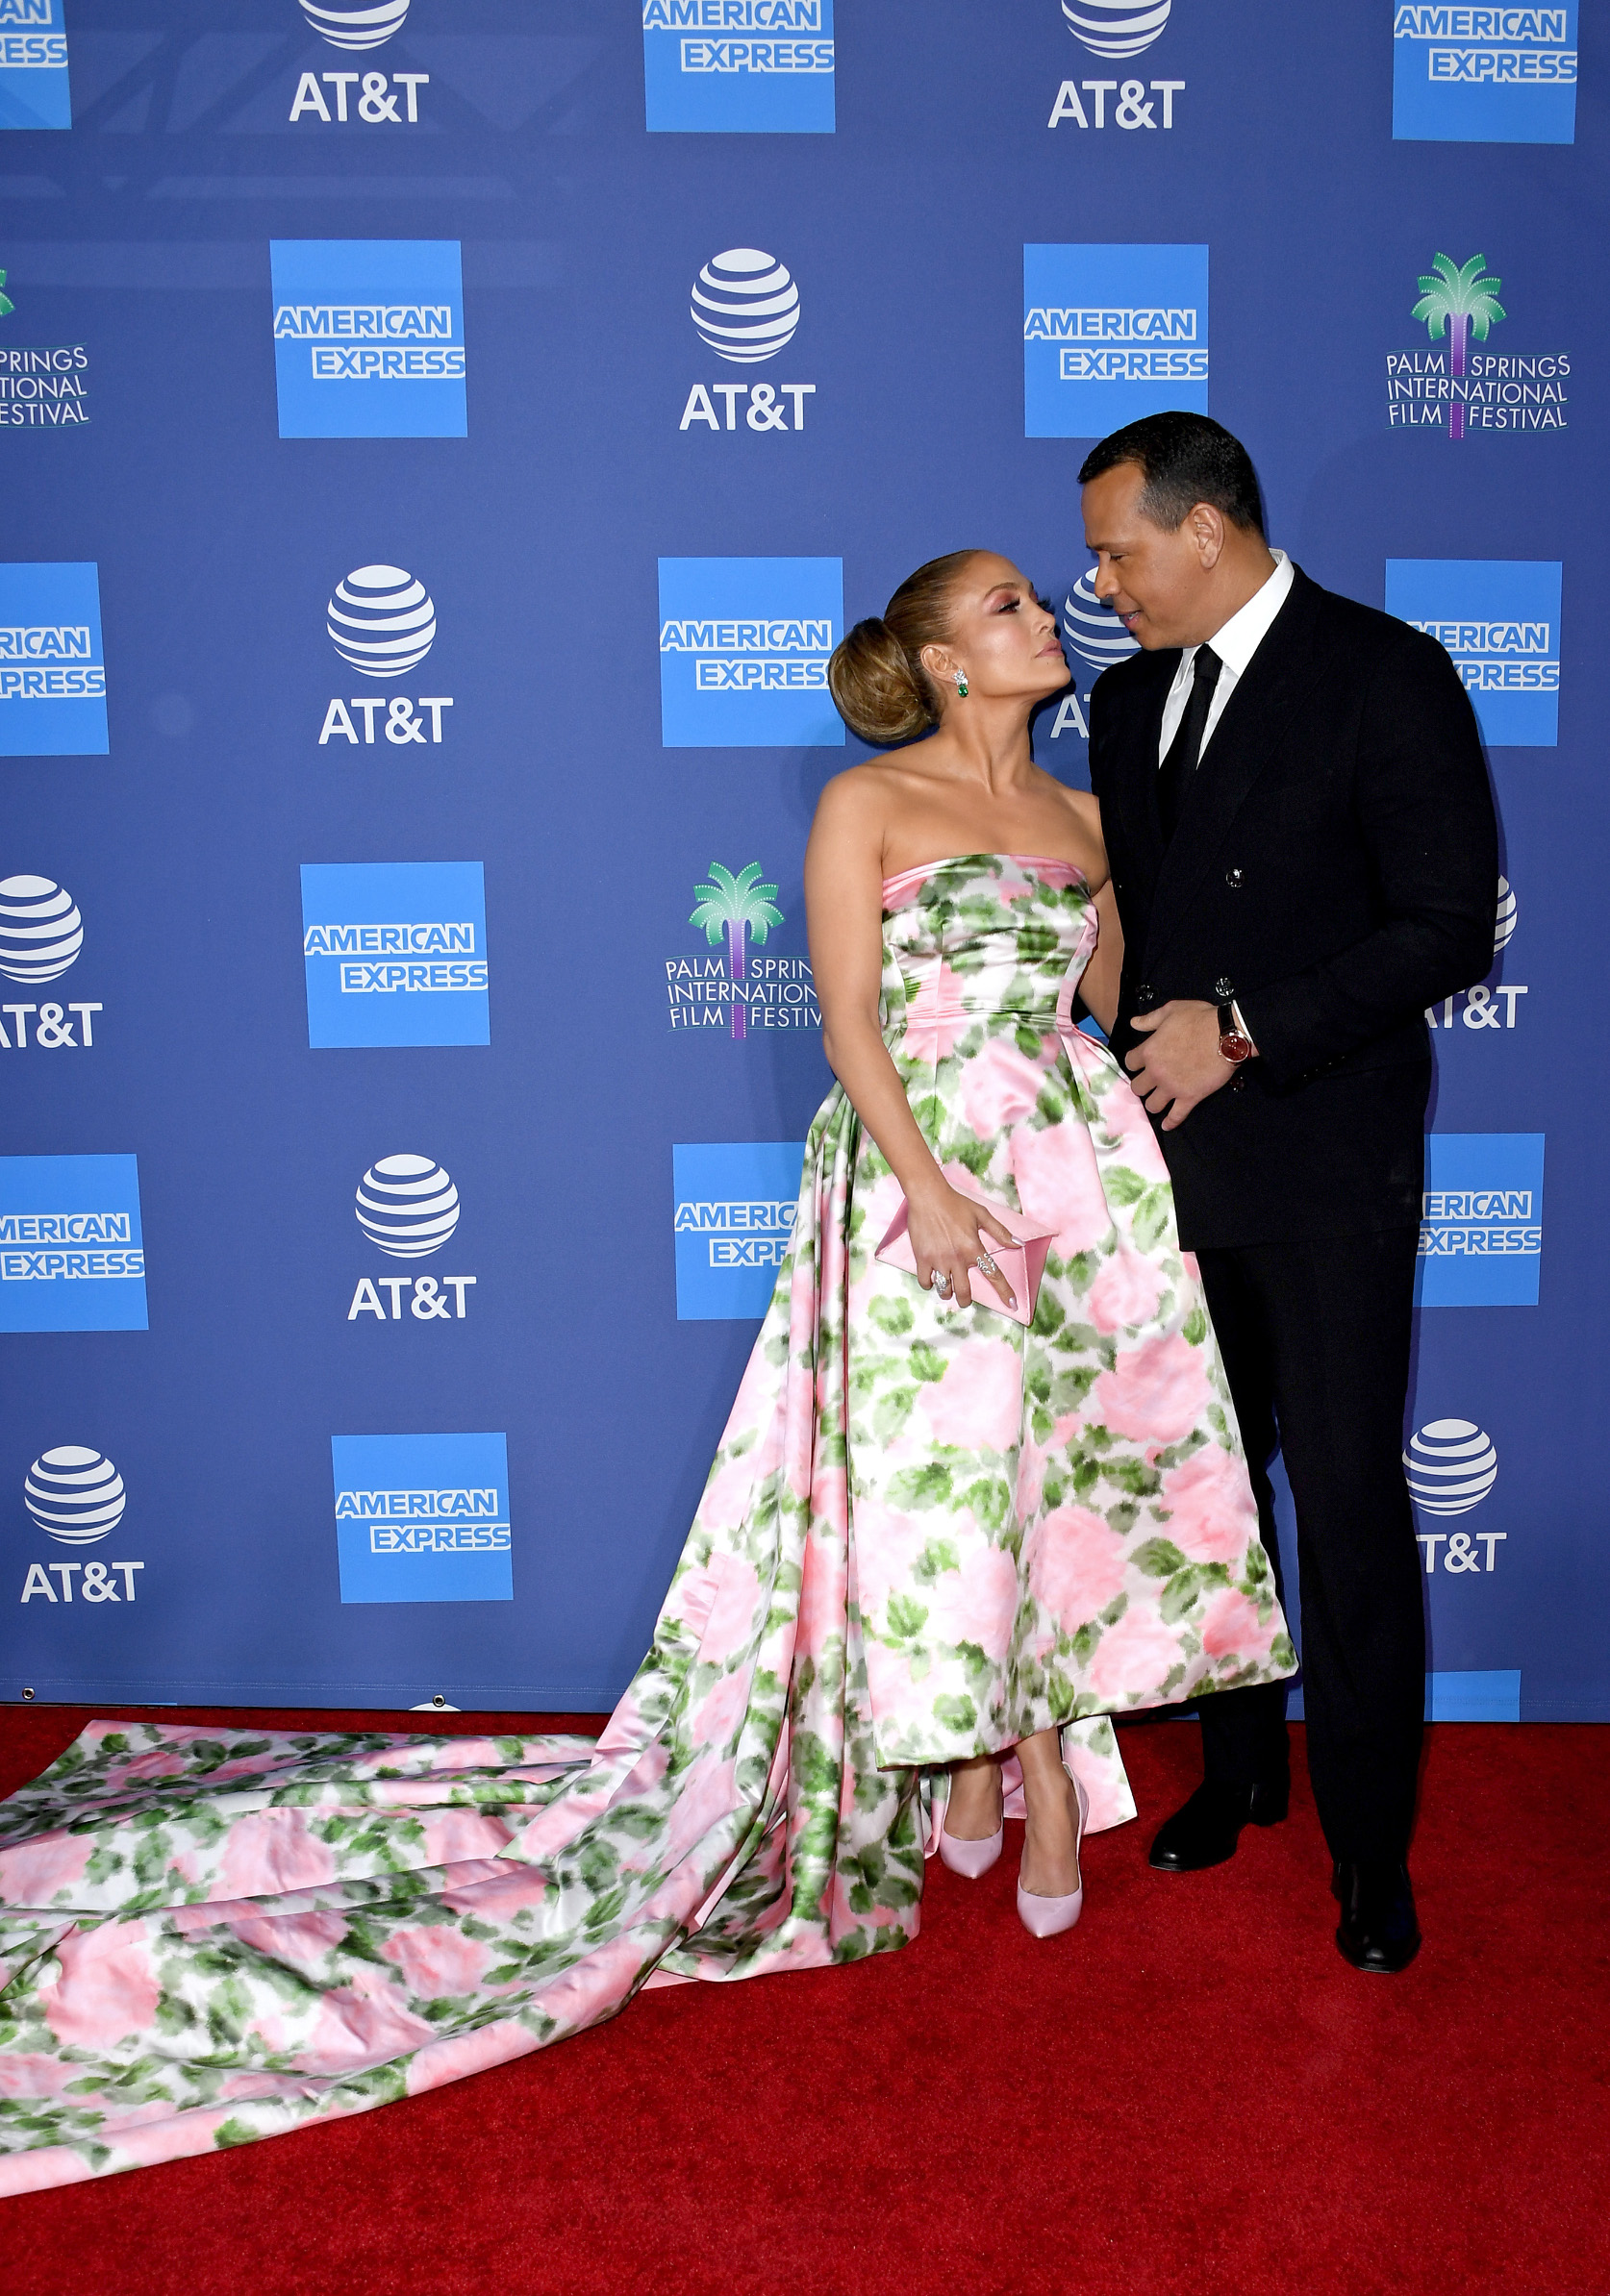 PALM SPRINGS, CALIFORNIA - JANUARY 02: (L-R) Jennifer Lopez and Alex Rodriguez attend the 31st Annual Palm Springs International Film Festival Film Awards Gala at Palm Springs Convention Center on January 02, 2020 in Palm Springs, California. (Photo by Jon Kopaloff/Getty Images)